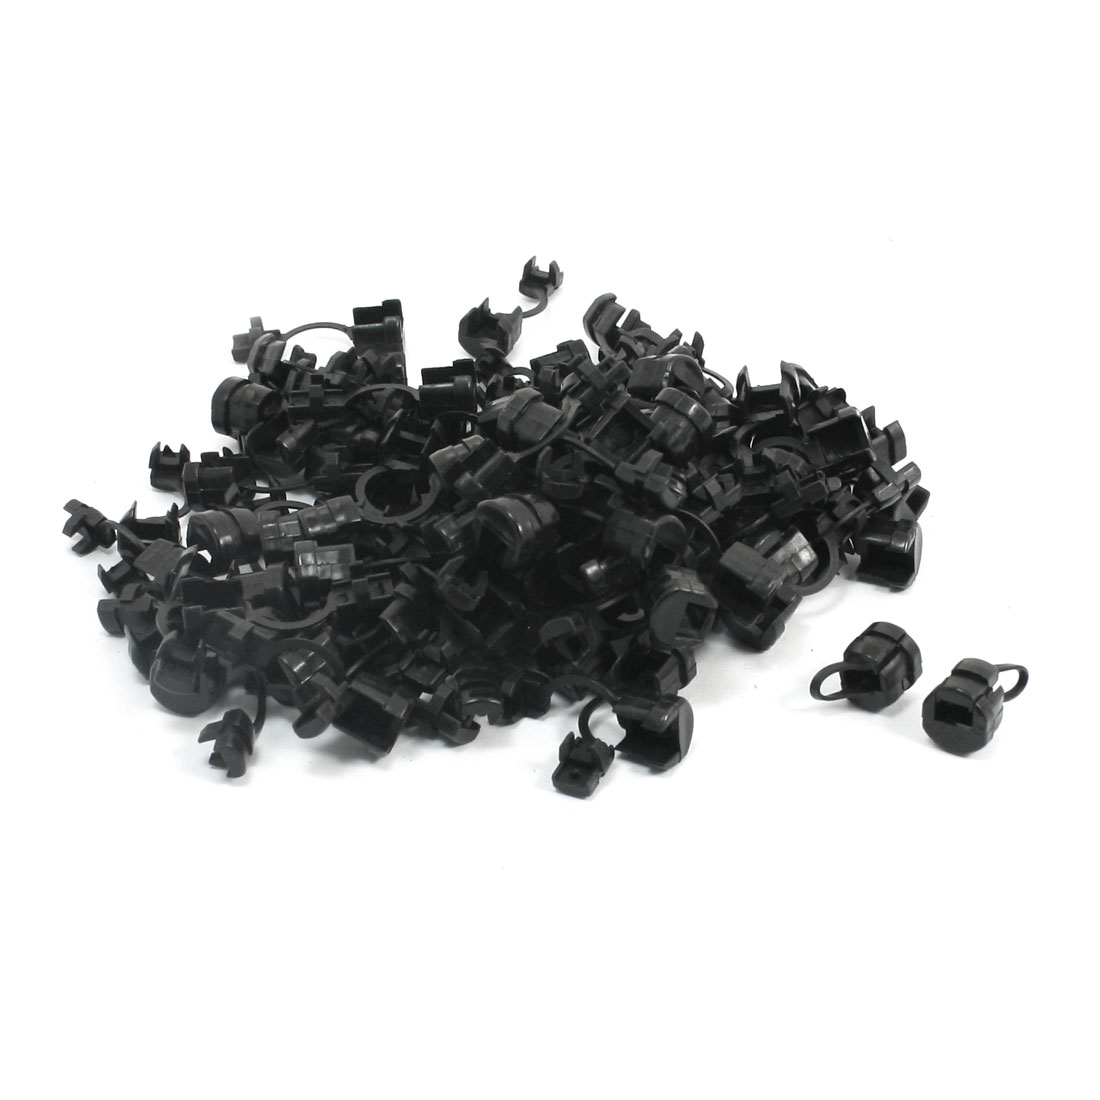 100 Pcs Wires Protectors Strain Relief Bushing for 4mm Width Flat Cables